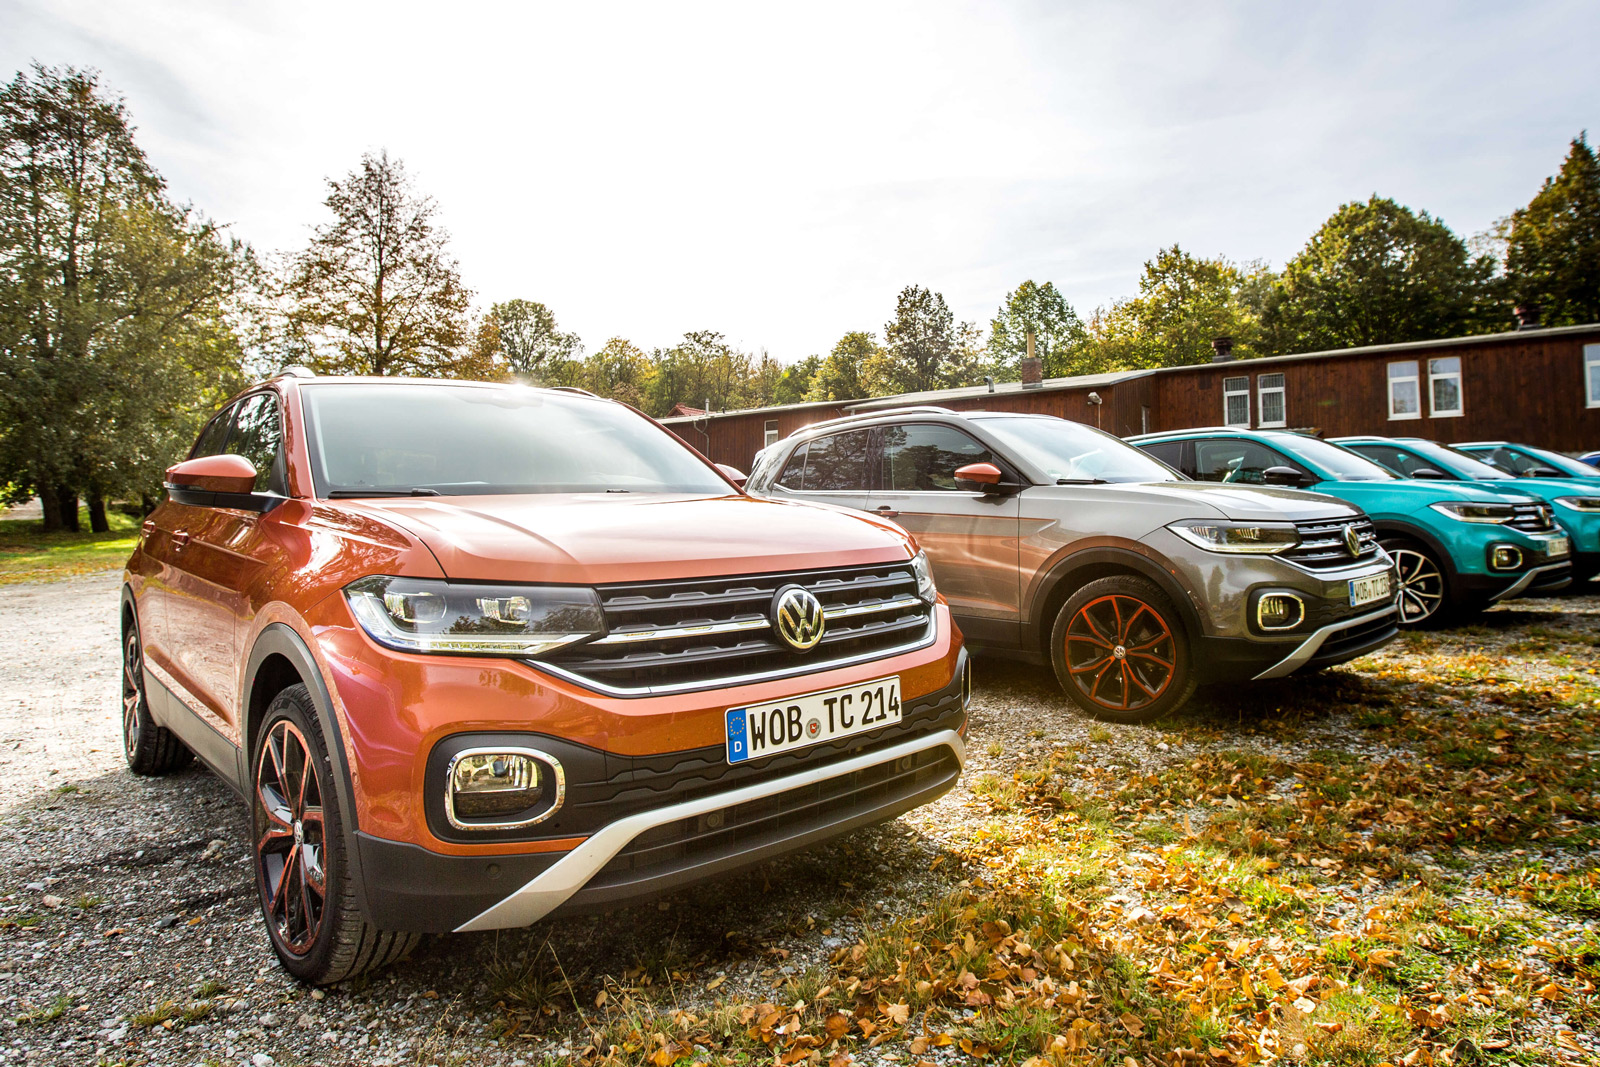 volkswagen-t-cross-shooting-start